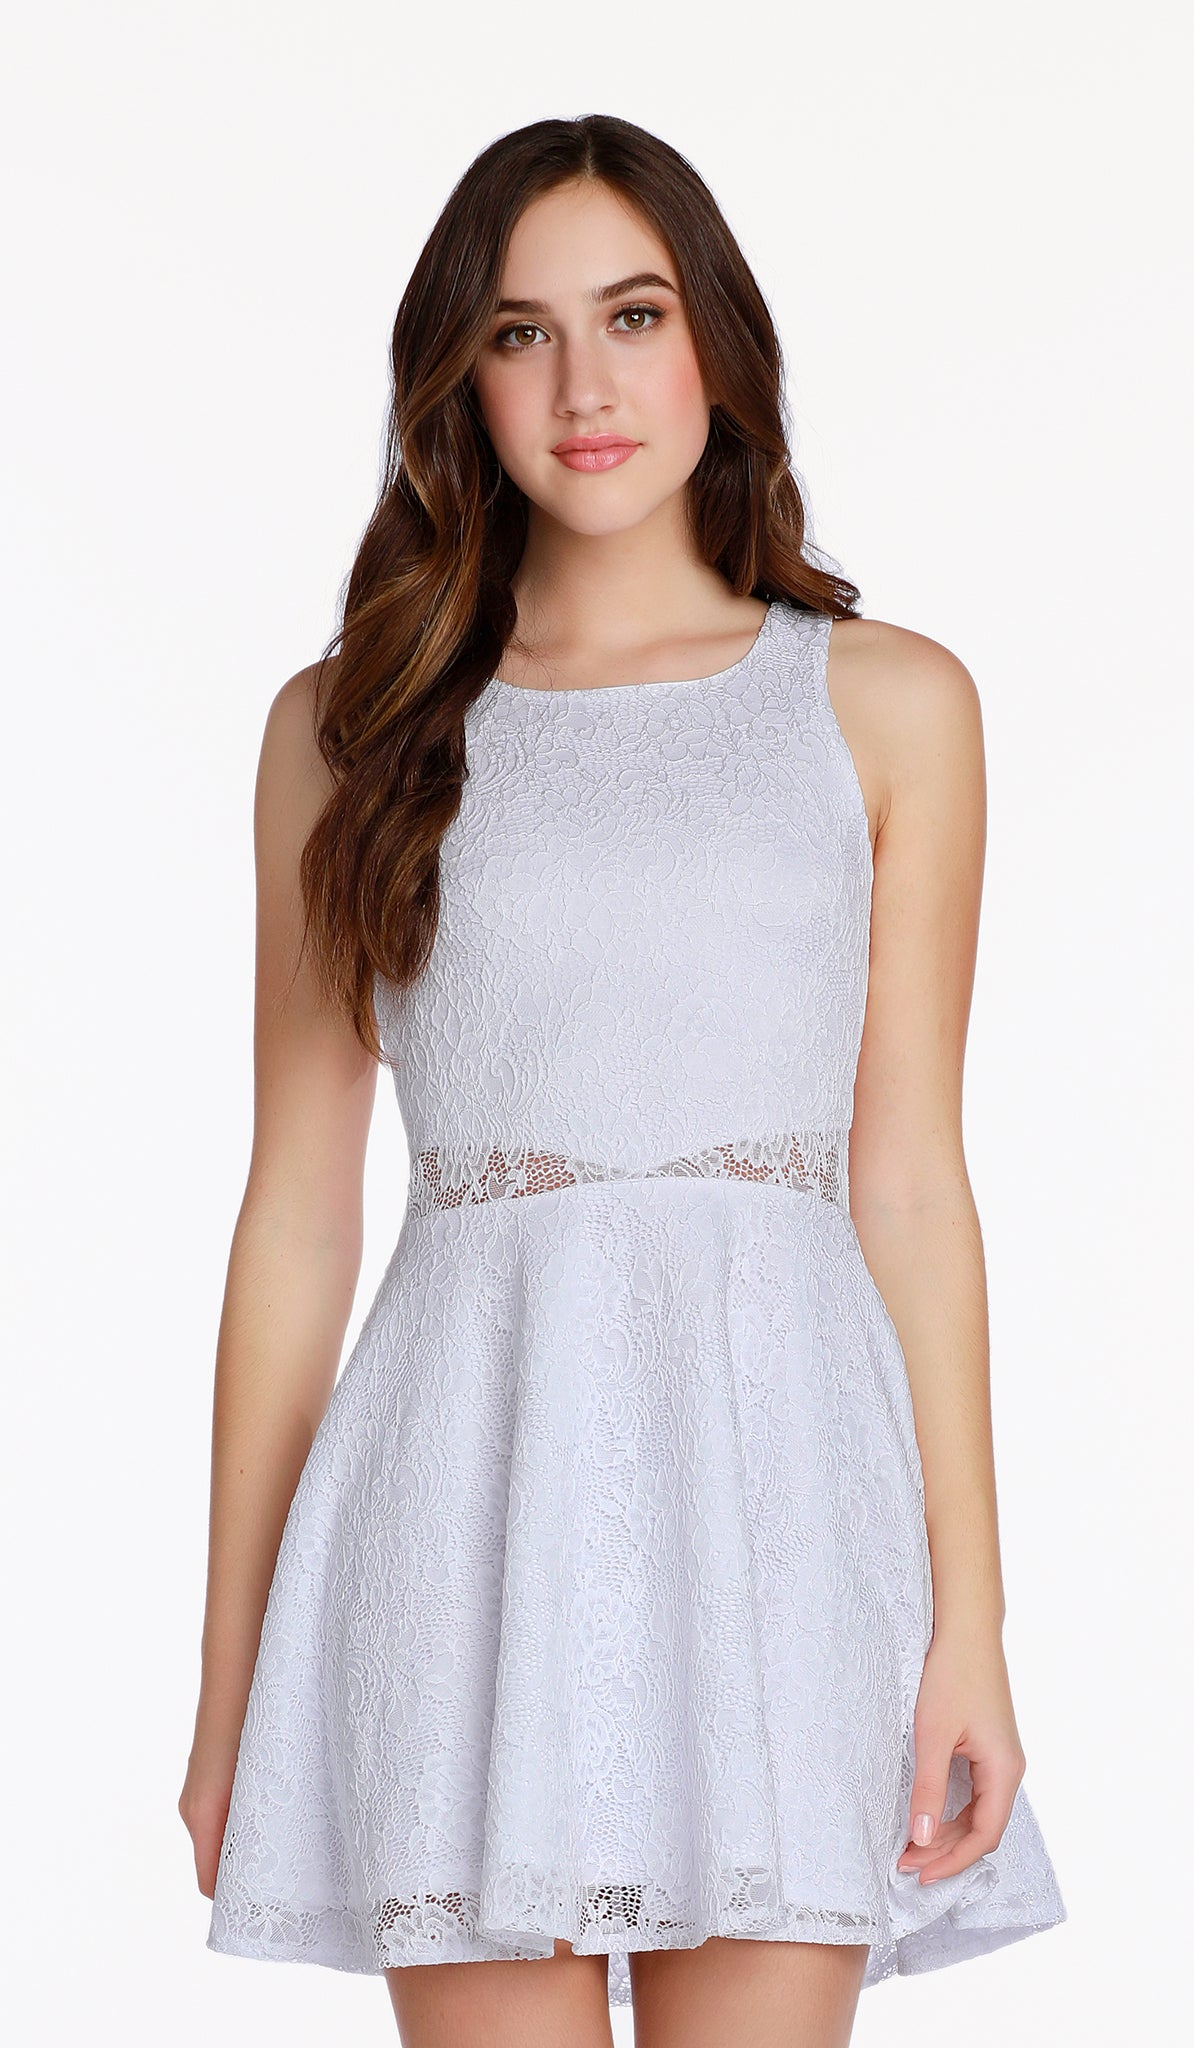 THE RENE DRESS (JUNIORS) - Sallymiller.com - [variant title] - | Event & Party Dresses for Tween Girls & Juniors | Weddings Dresses, Bat Mitzvah Dresses, Sweet Sixteen Dresses, Graduation Dresses, Birthday Party Dresses, Bar Mitzvah Dresses, Cotillion Dresses